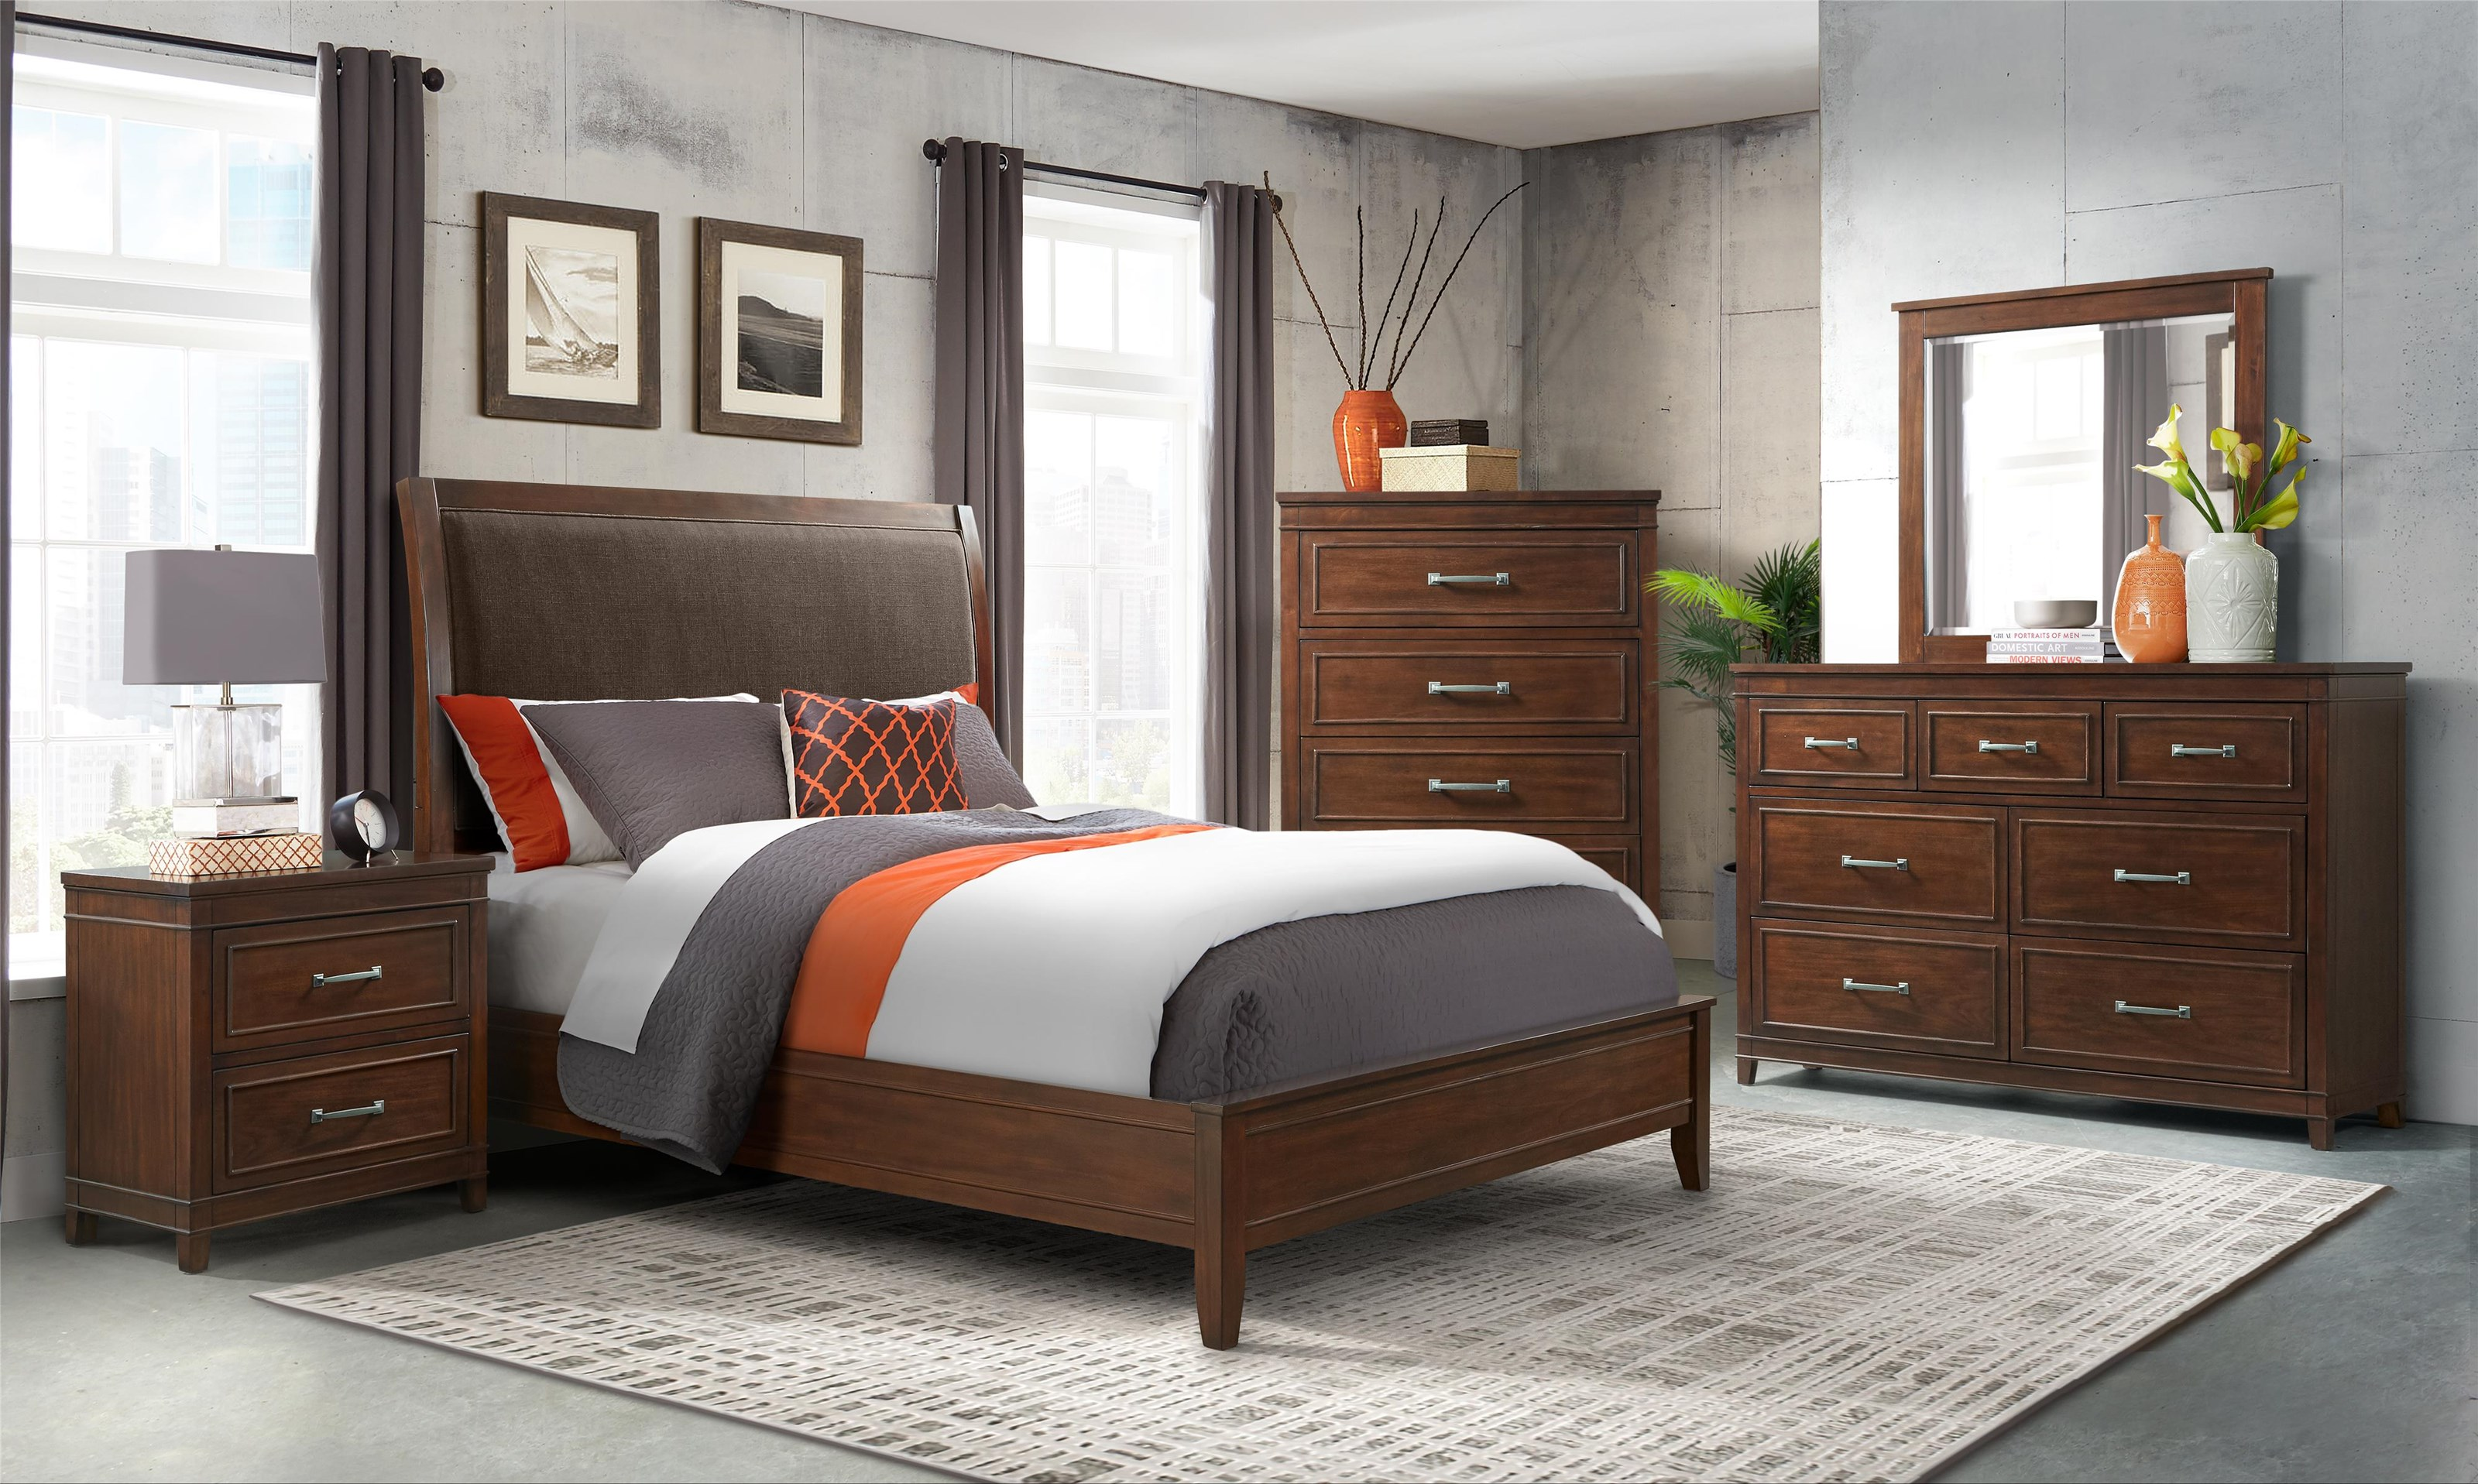 LaJolla Queen Size Bed by Martin Svensson Home at Darvin Furniture